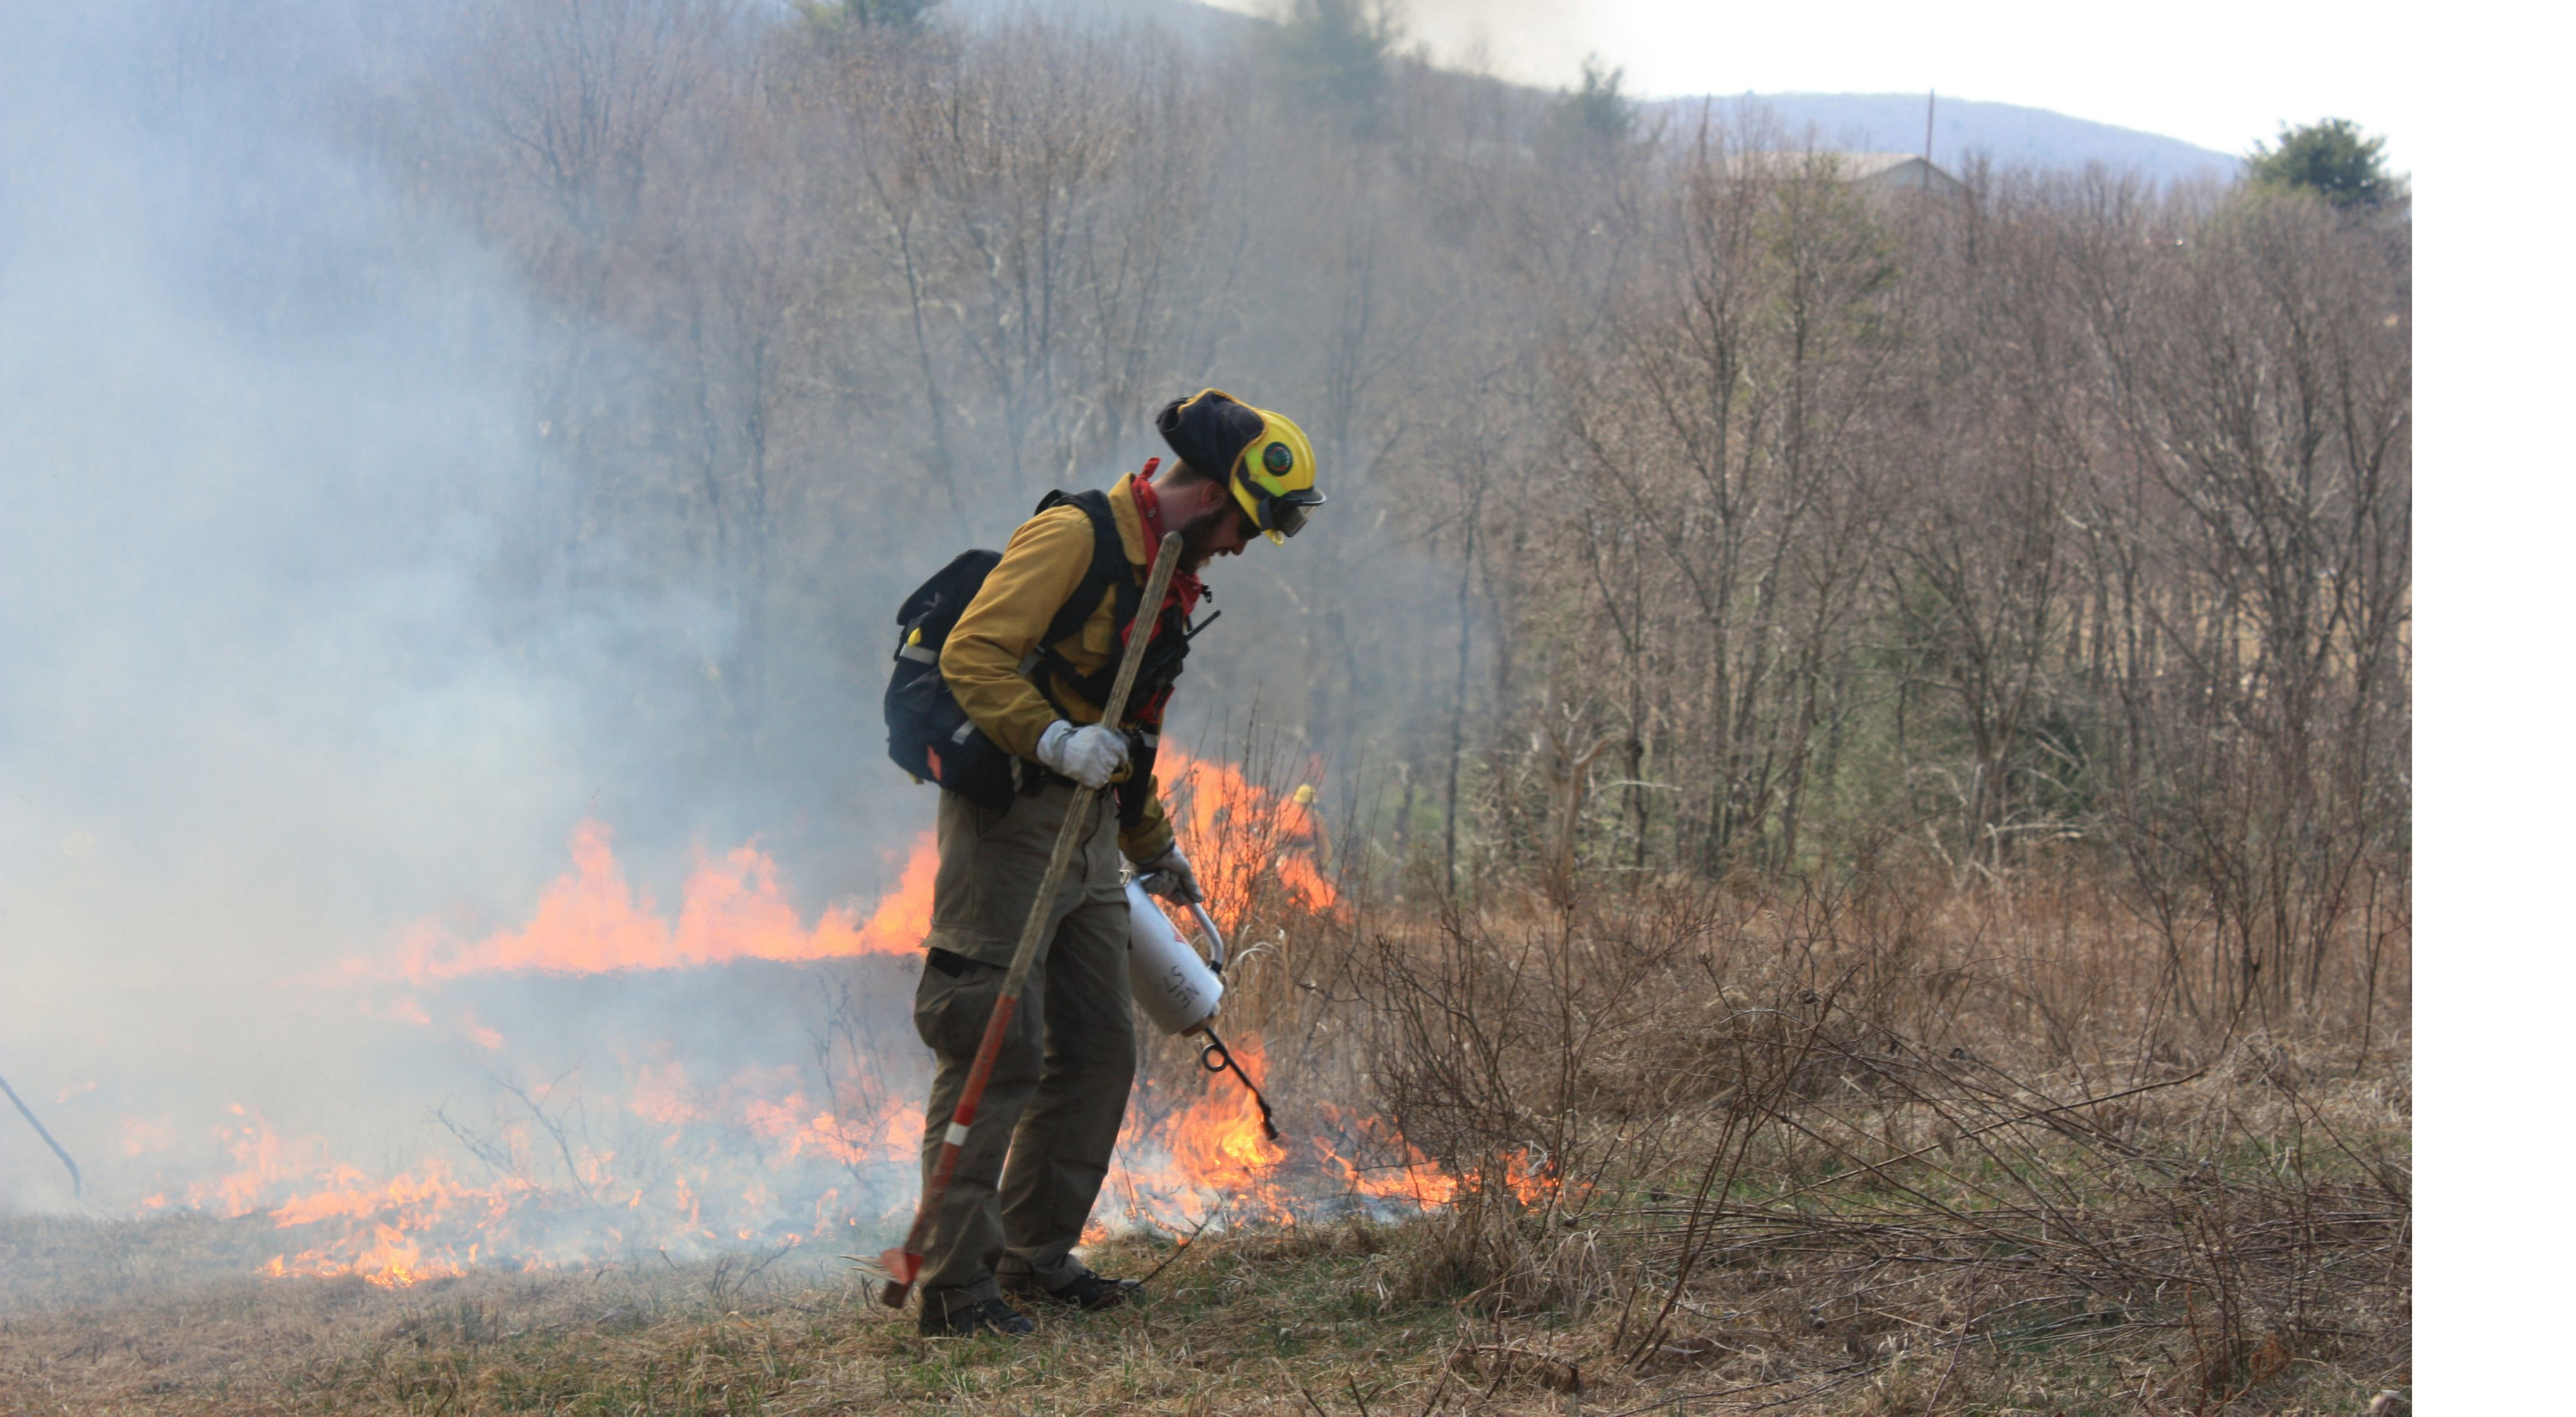 A burn crew dressed in yellow directs fire towards the ground.